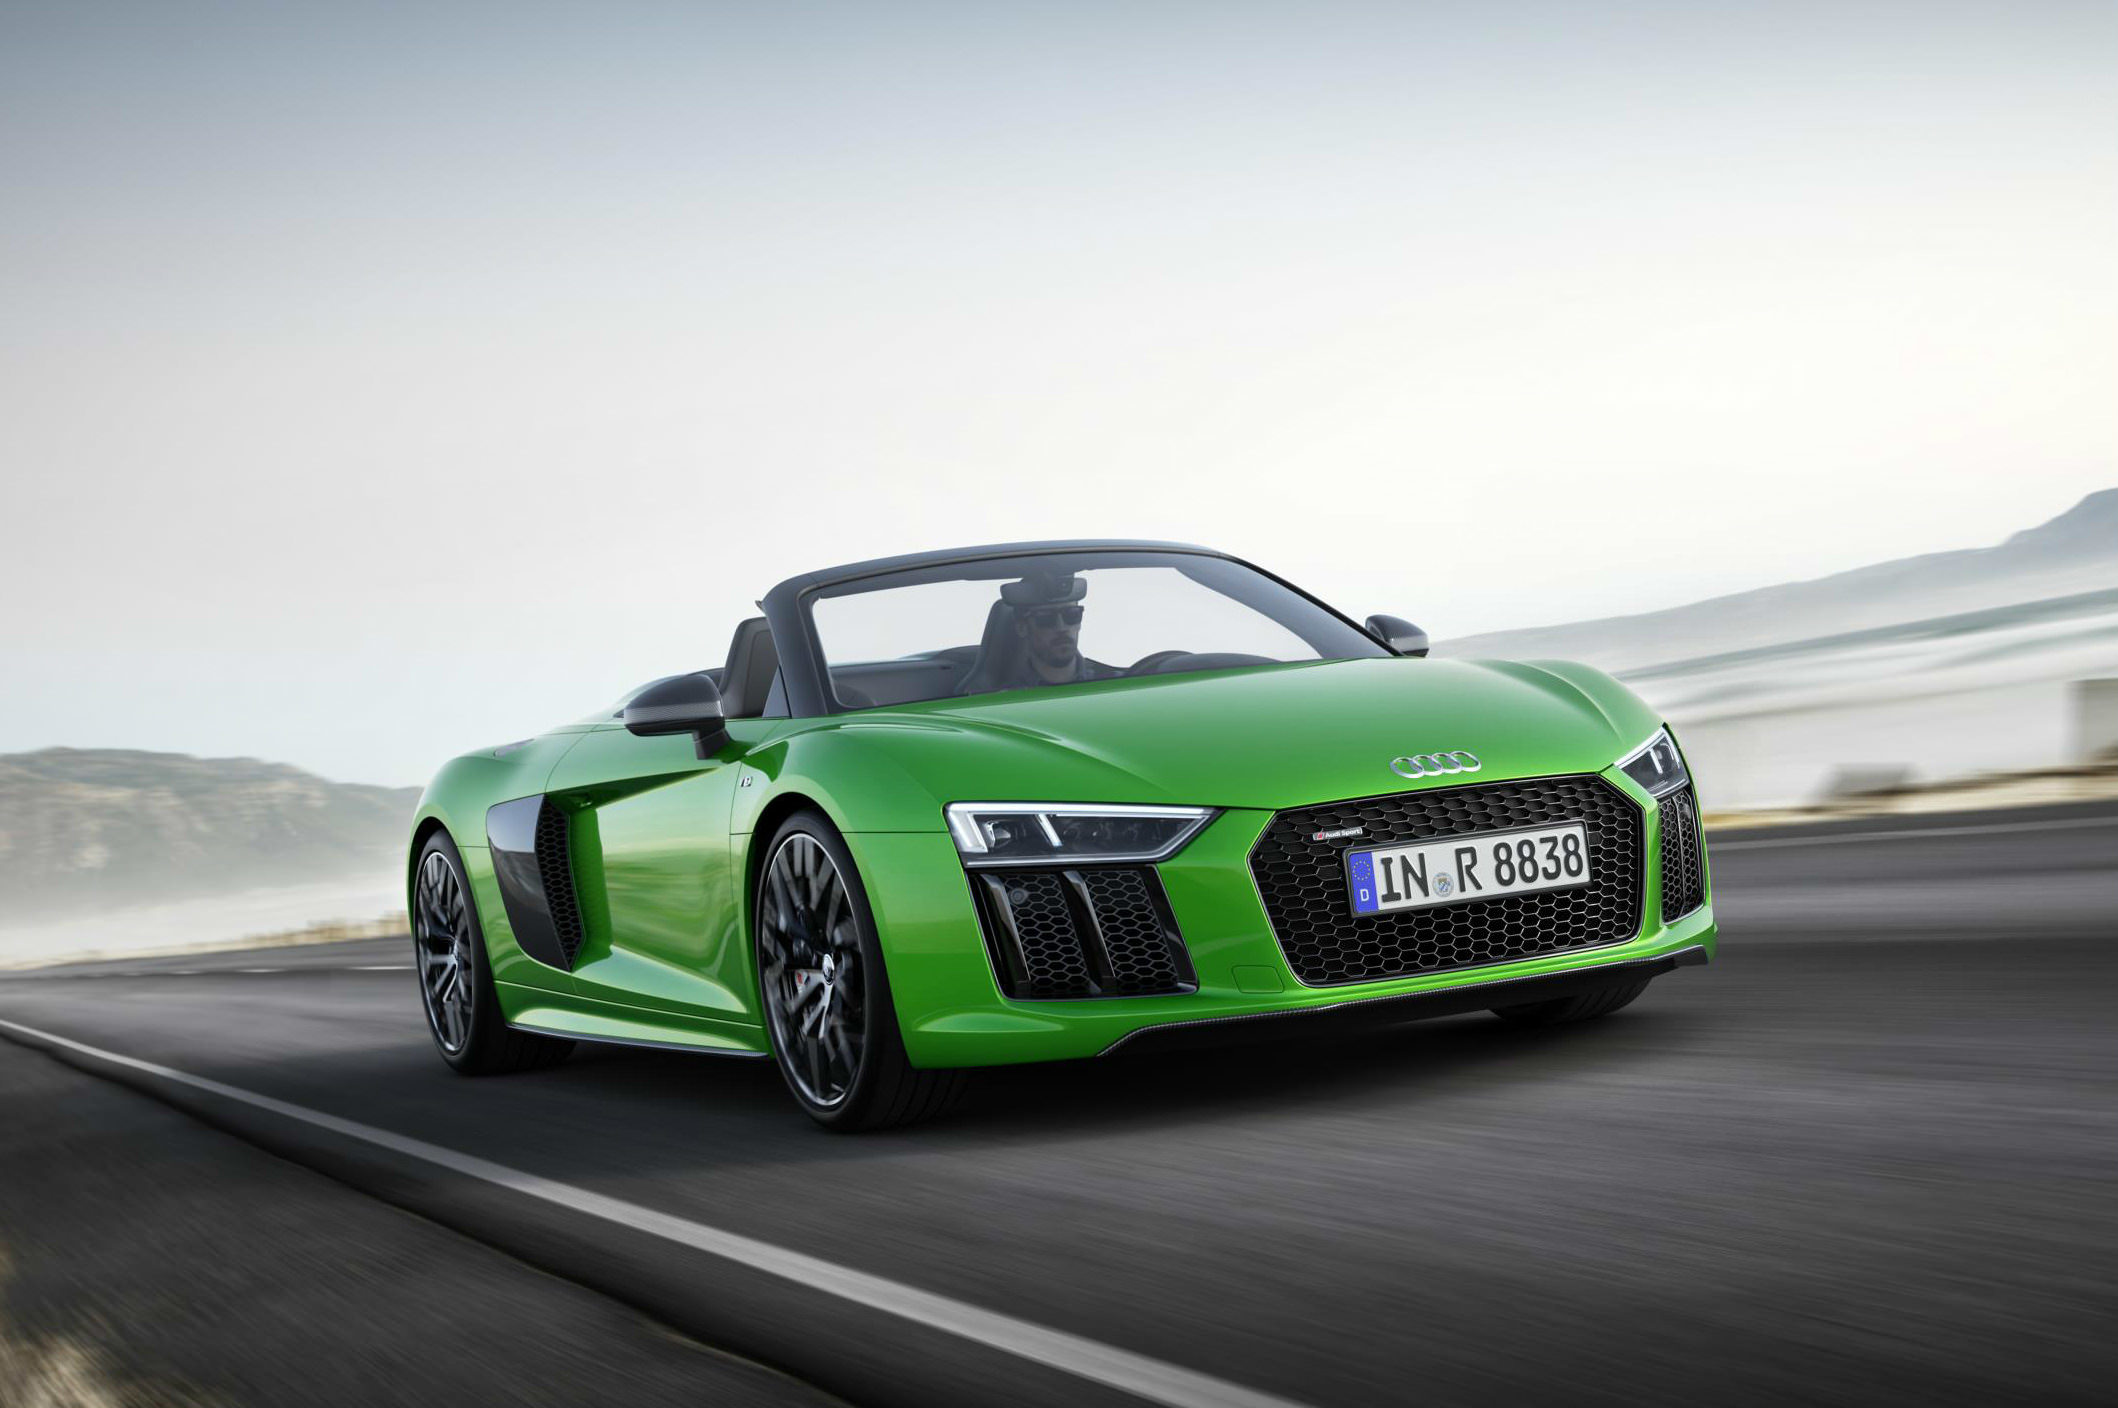 image of a green audi r8 v10 plus spider car